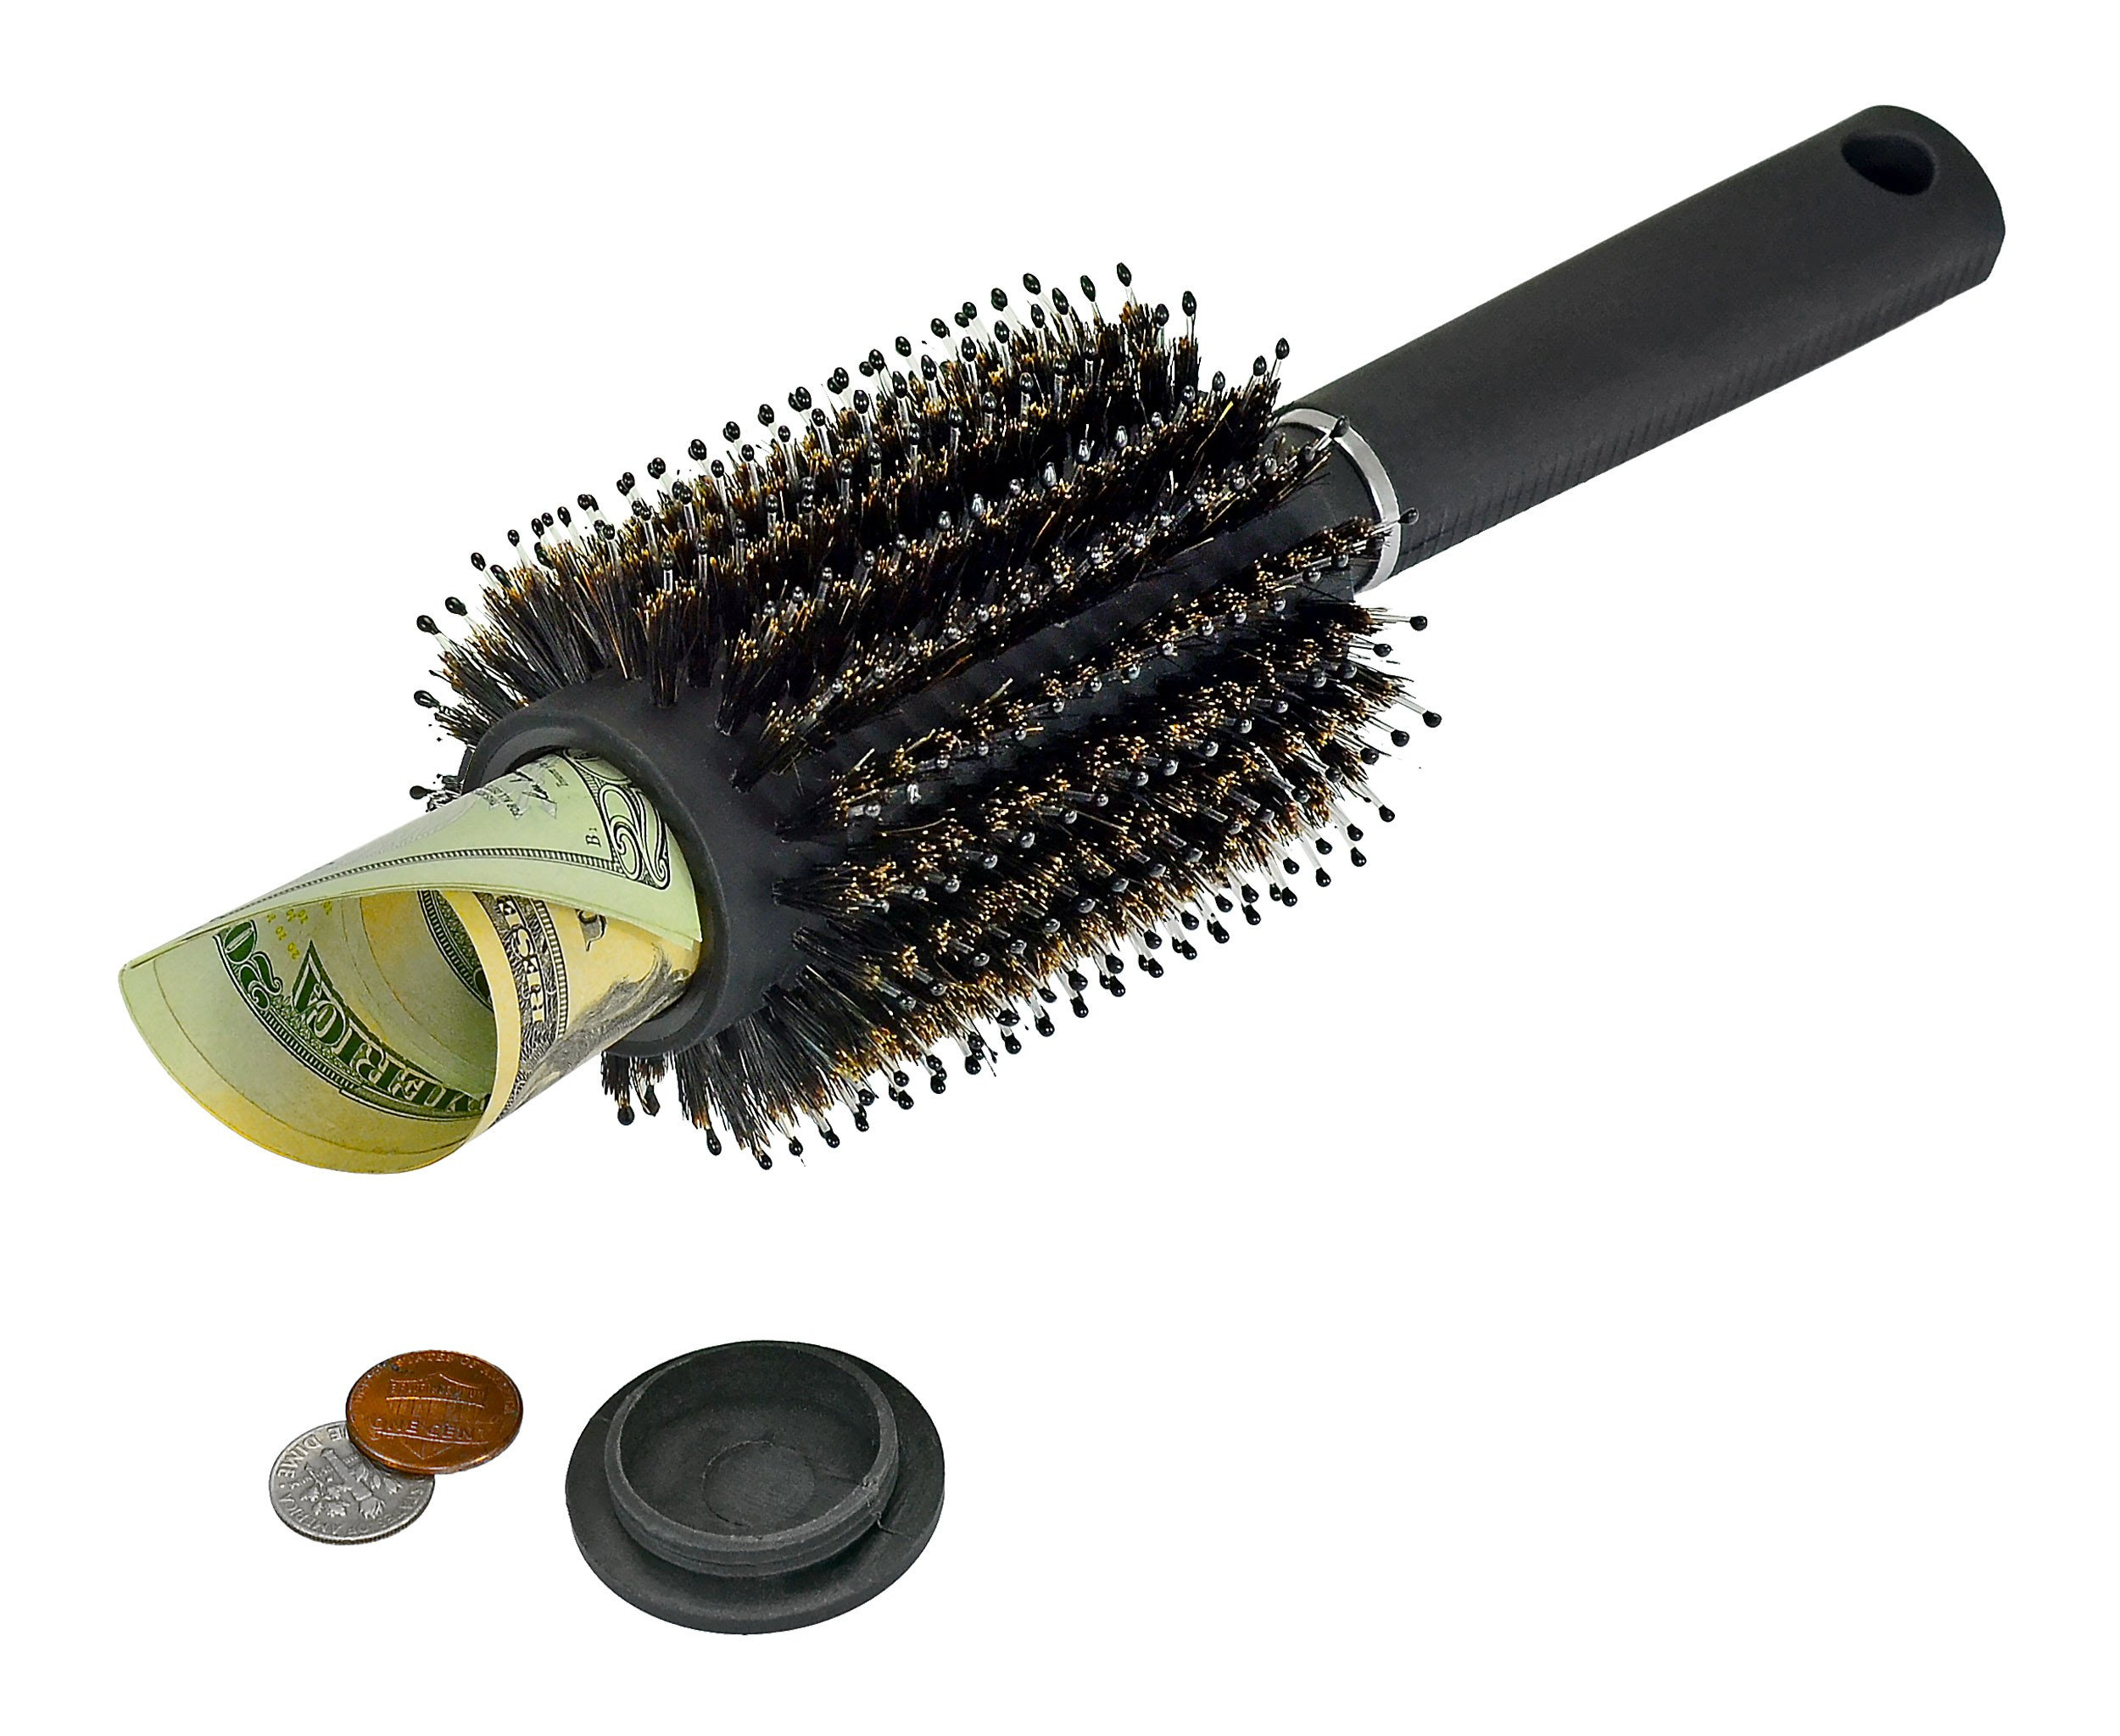 Southern Homewares SH-10206 Hair Brush Secret Hidden Diversion Safe Money Jewelry Storage Home Security, 9.00 inch x 2.92 inch x 2.92 inch